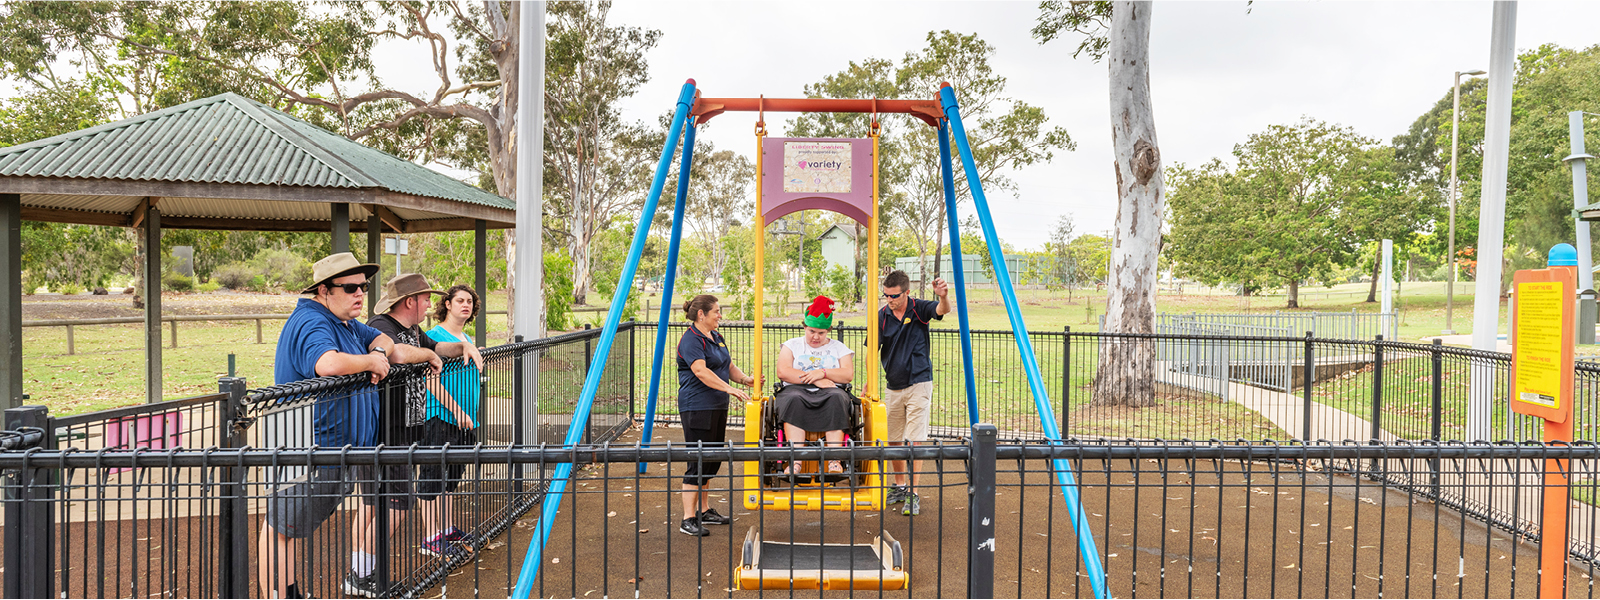 Residents enjoying the all abilities liberty swing